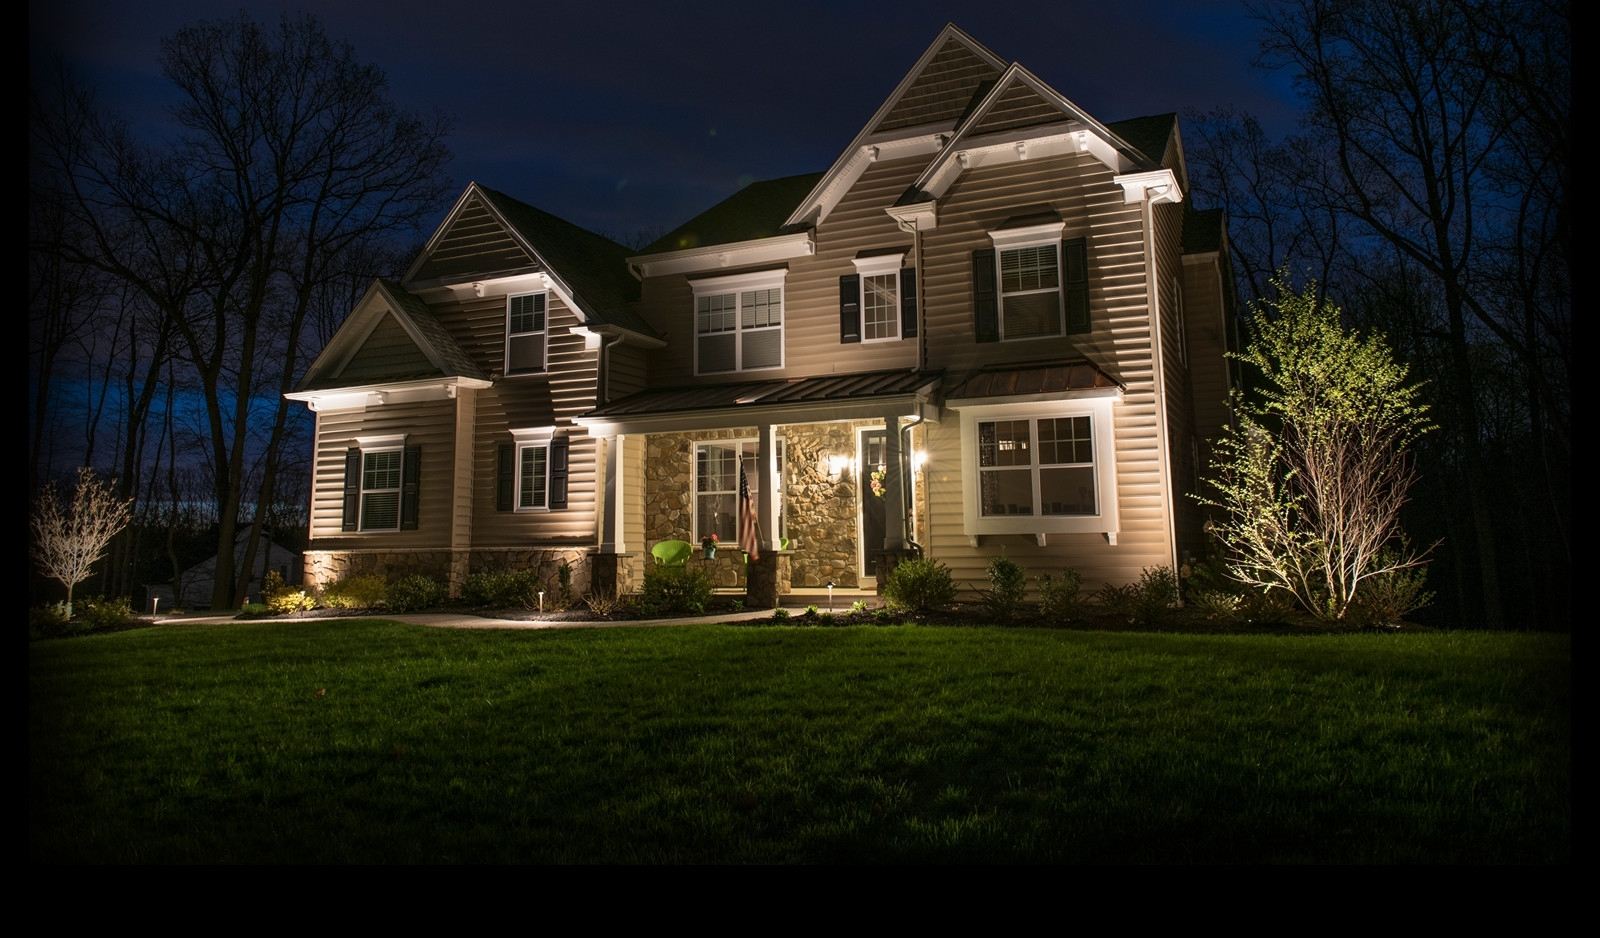 Ideas For Hanging Lights Outside Front And Backyard Landscaping Within Most Up To Date Outdoor House Lanterns (Gallery 16 of 20)